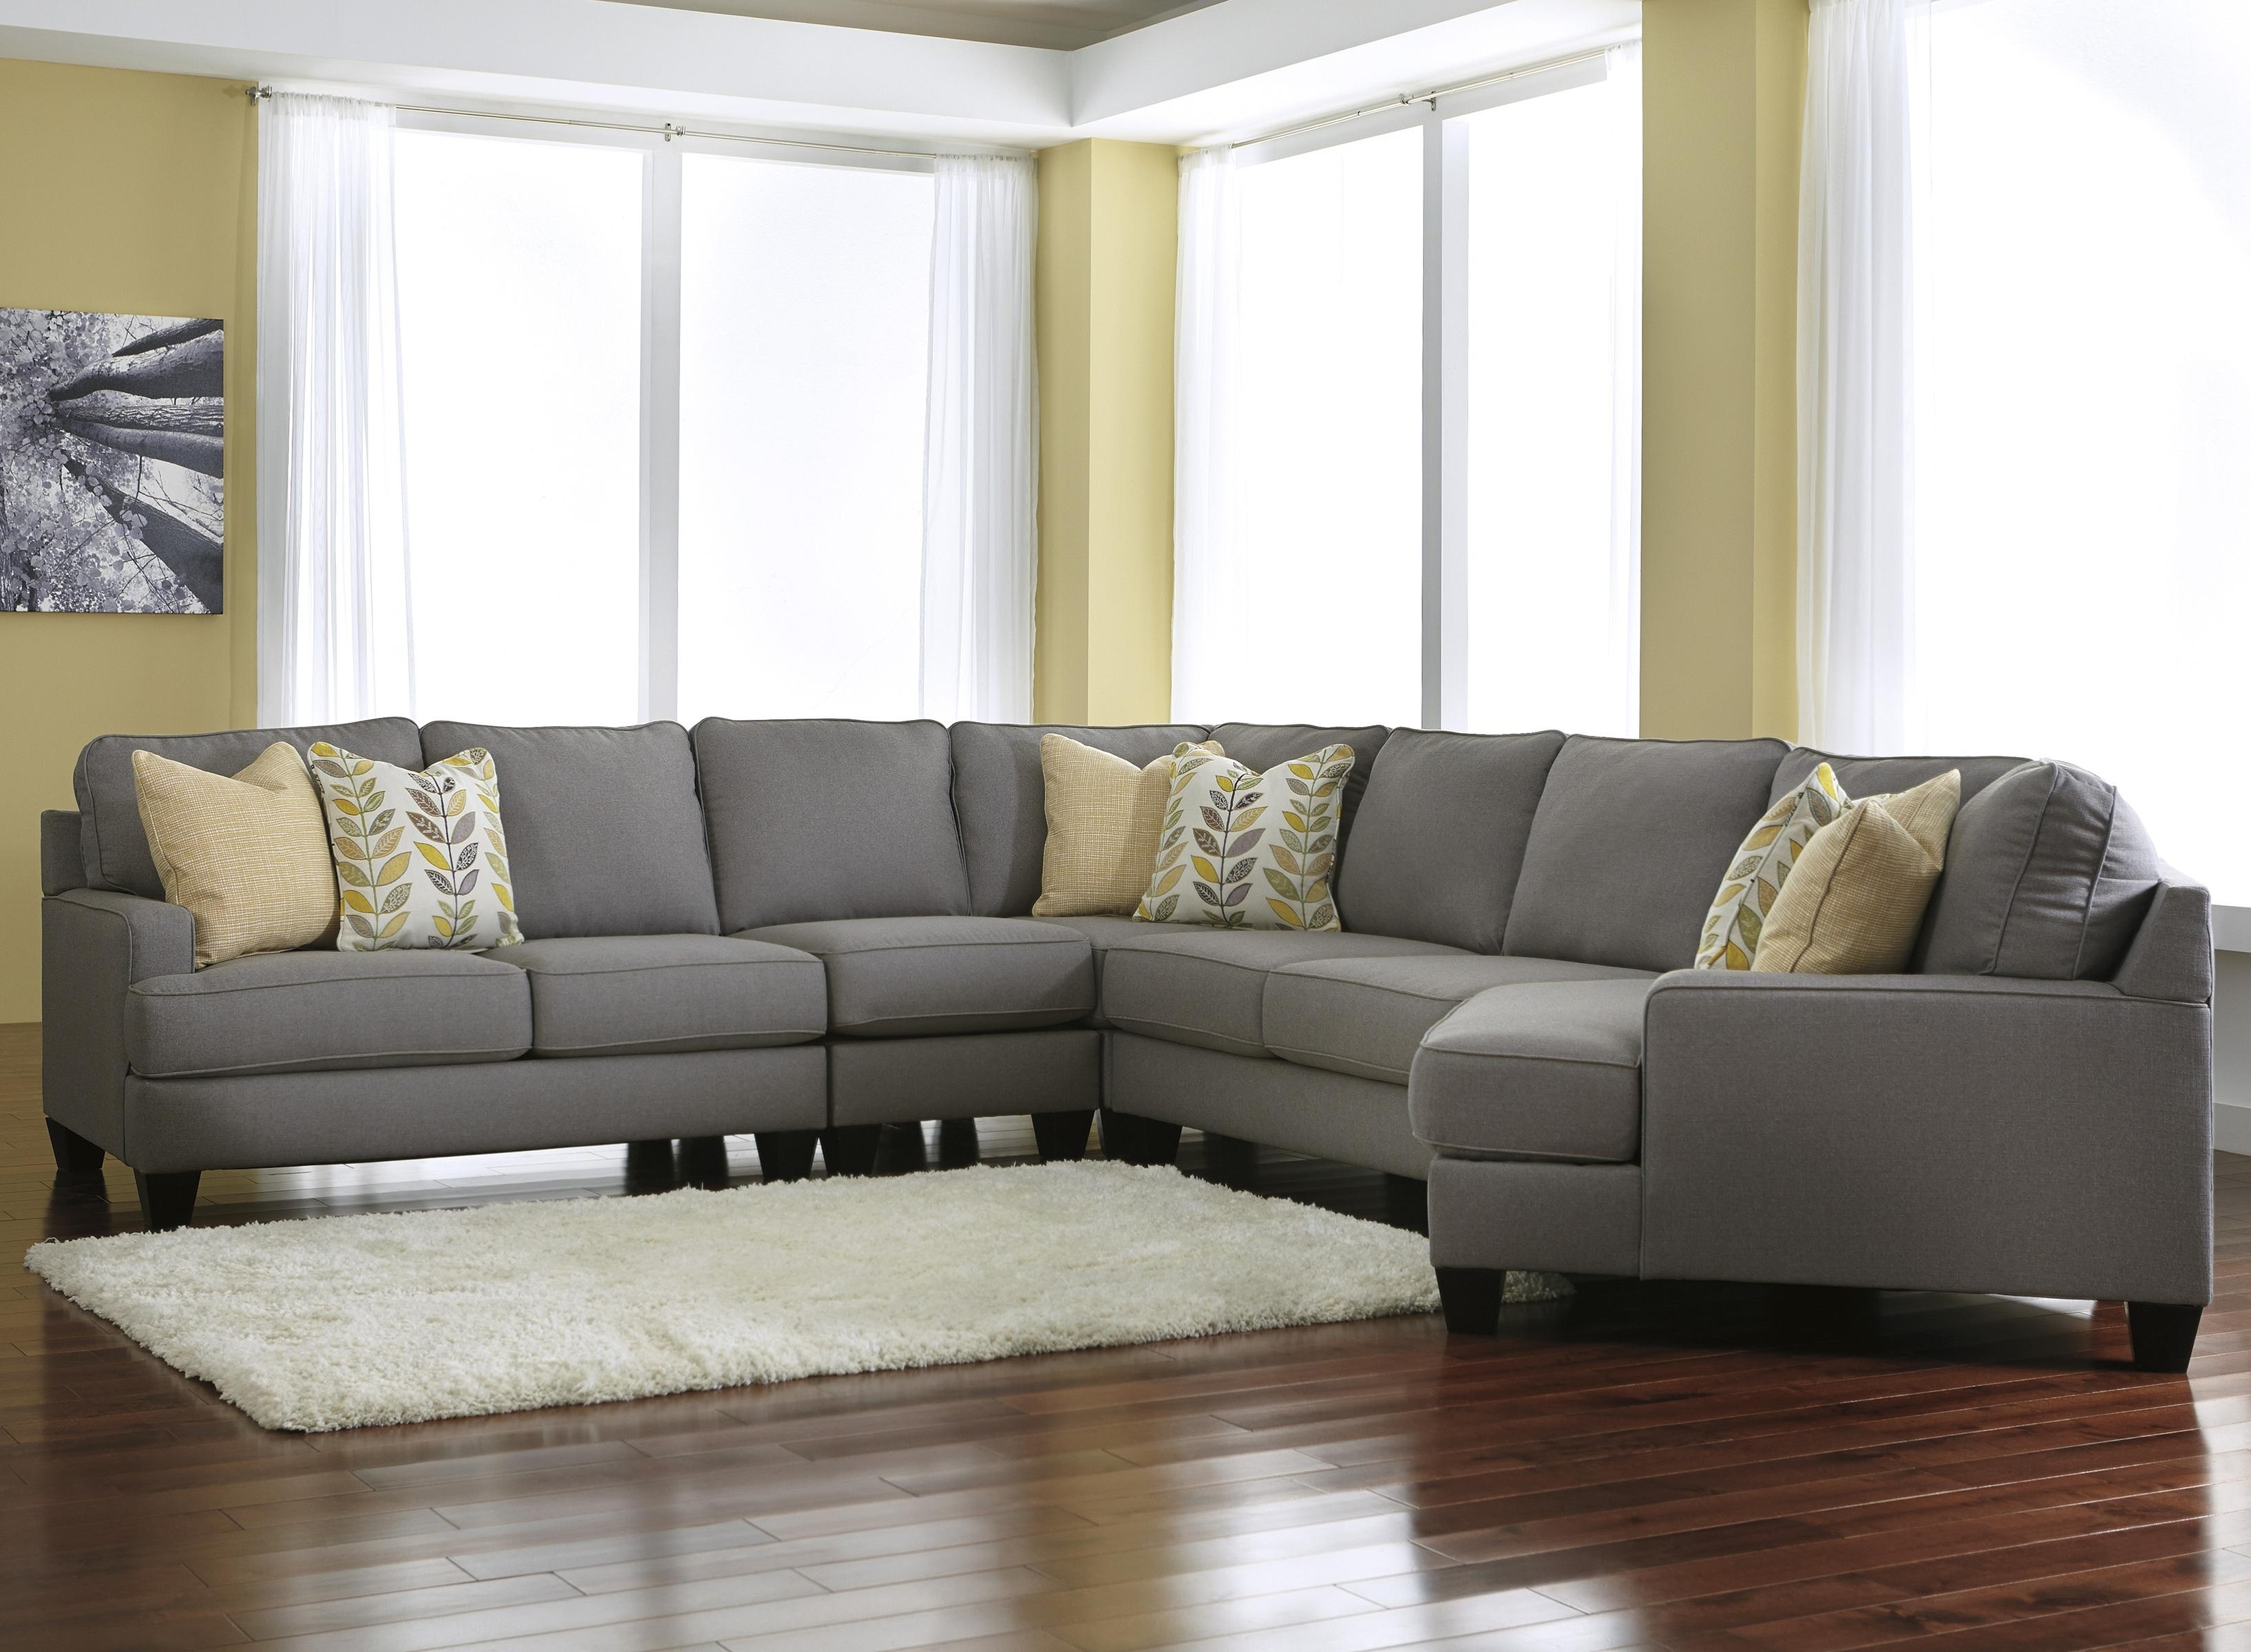 Chamberly - Alloy Modern 5-Piece Sectional Sofa With Right Cuddler regarding Royal Furniture Sectional Sofas (Image 4 of 10)